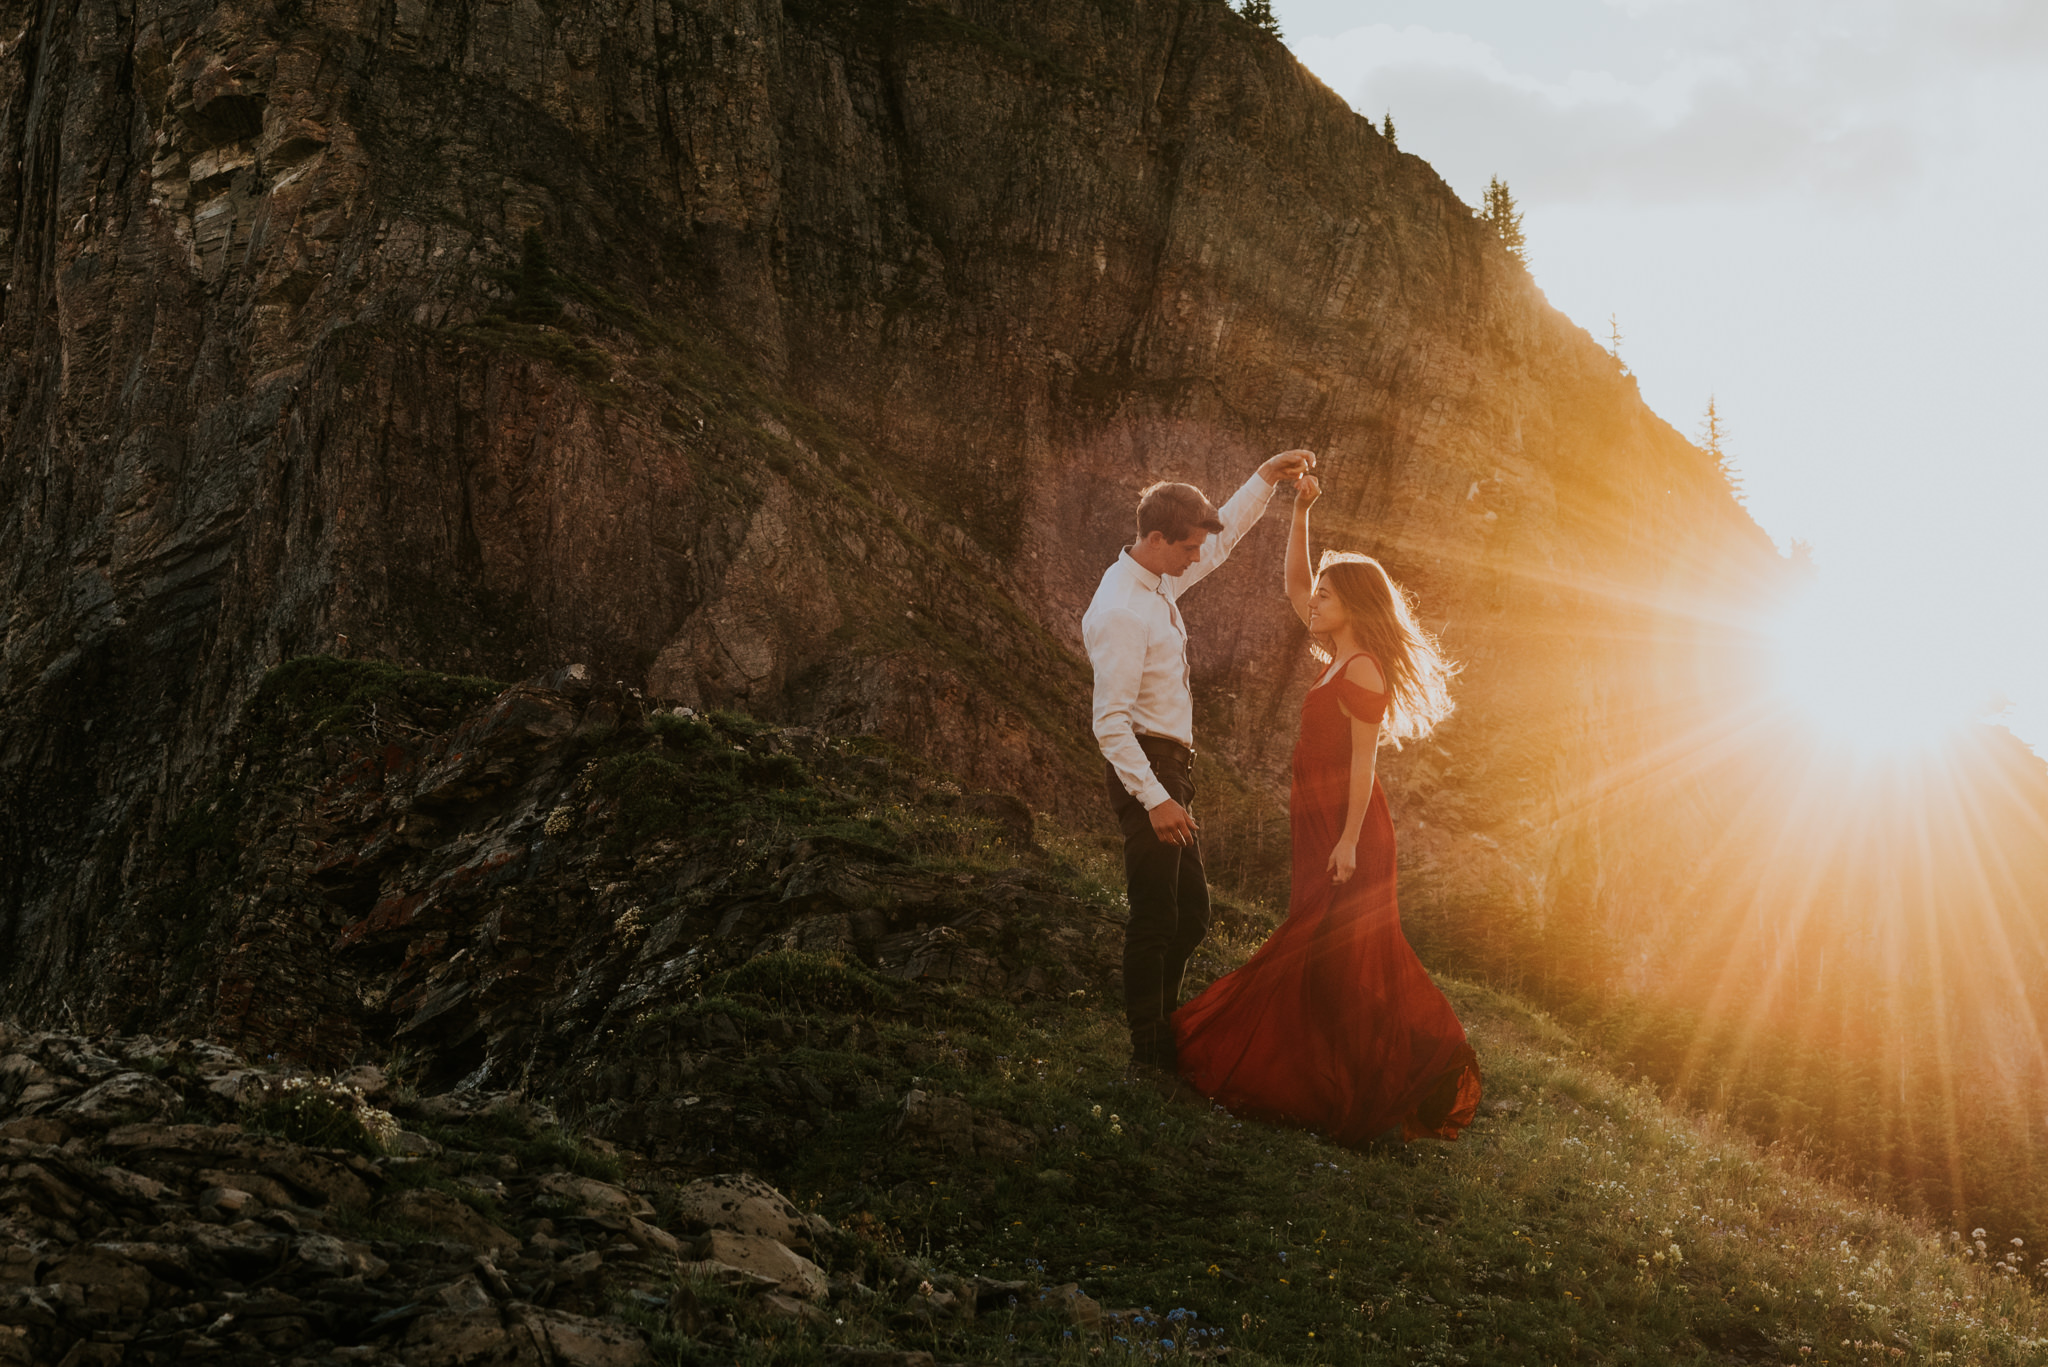 Dancing on top of a mountain